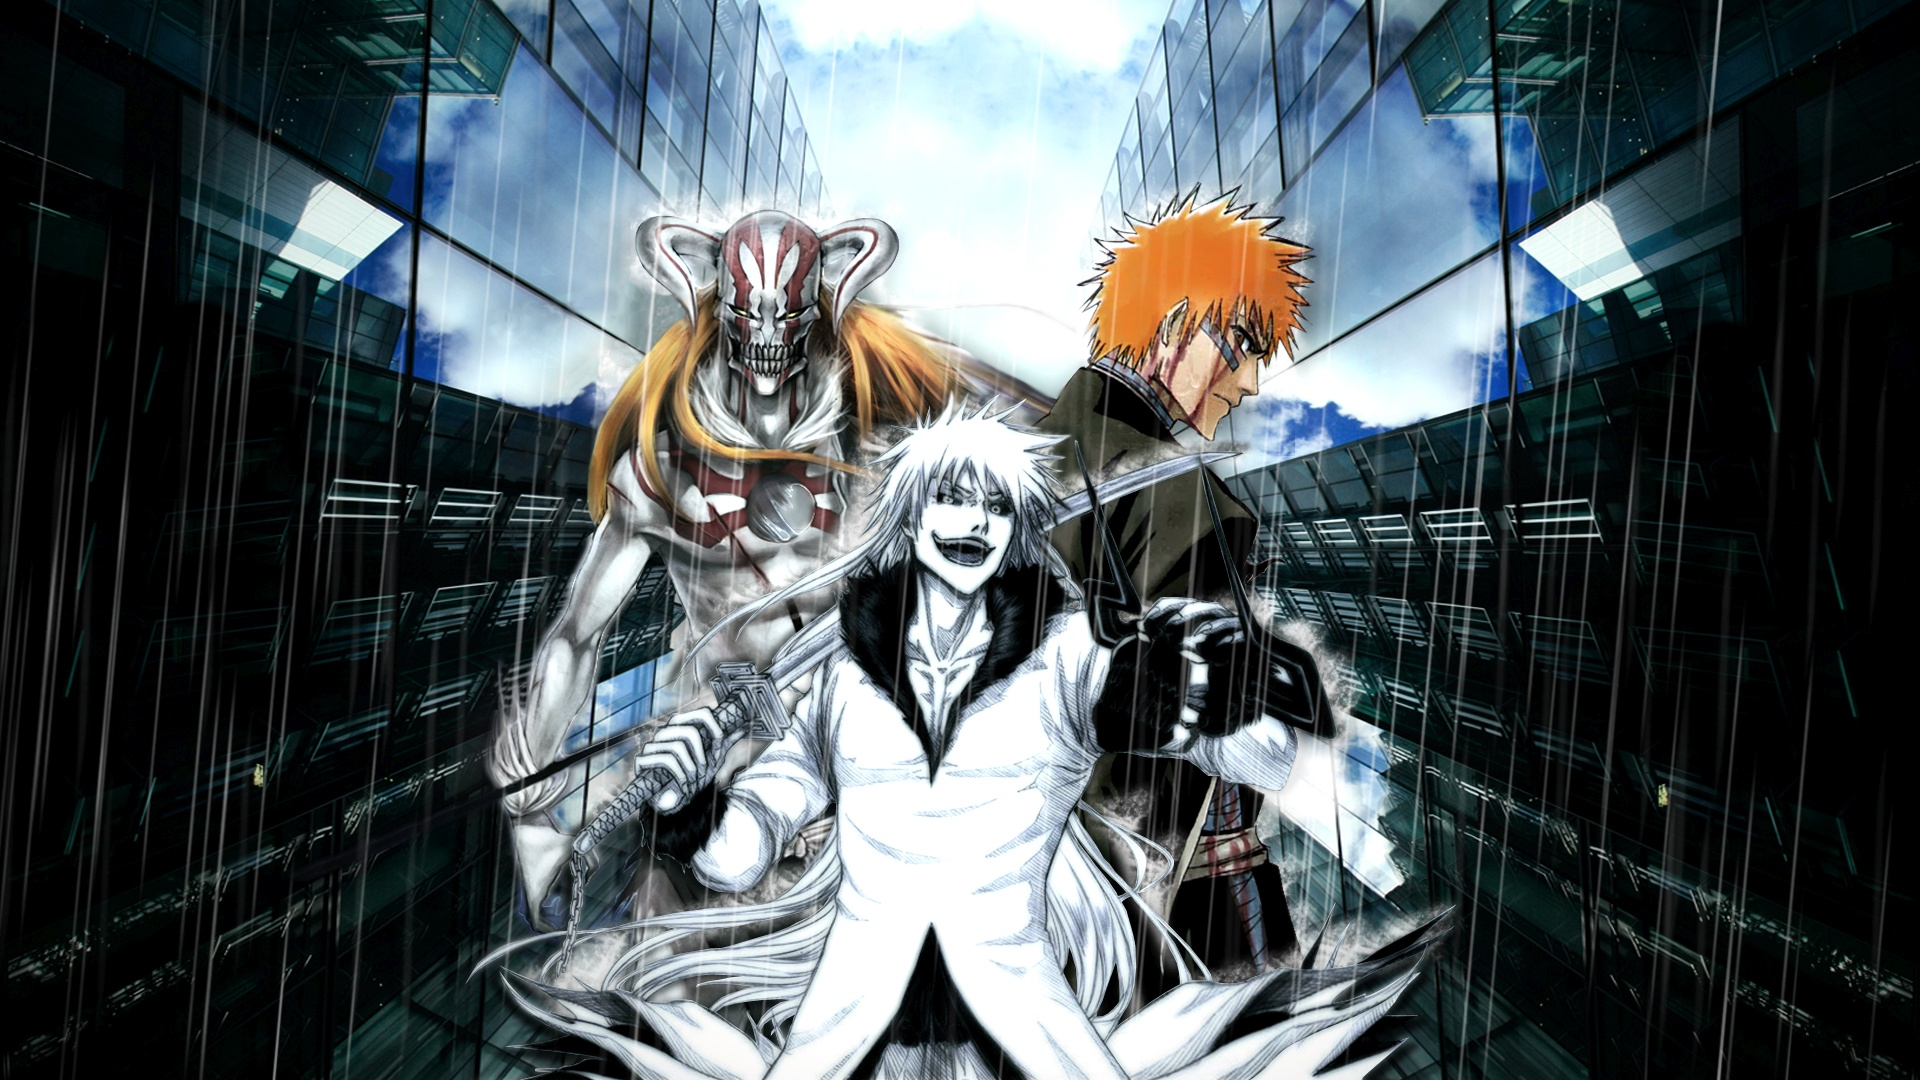 Bleach cool background